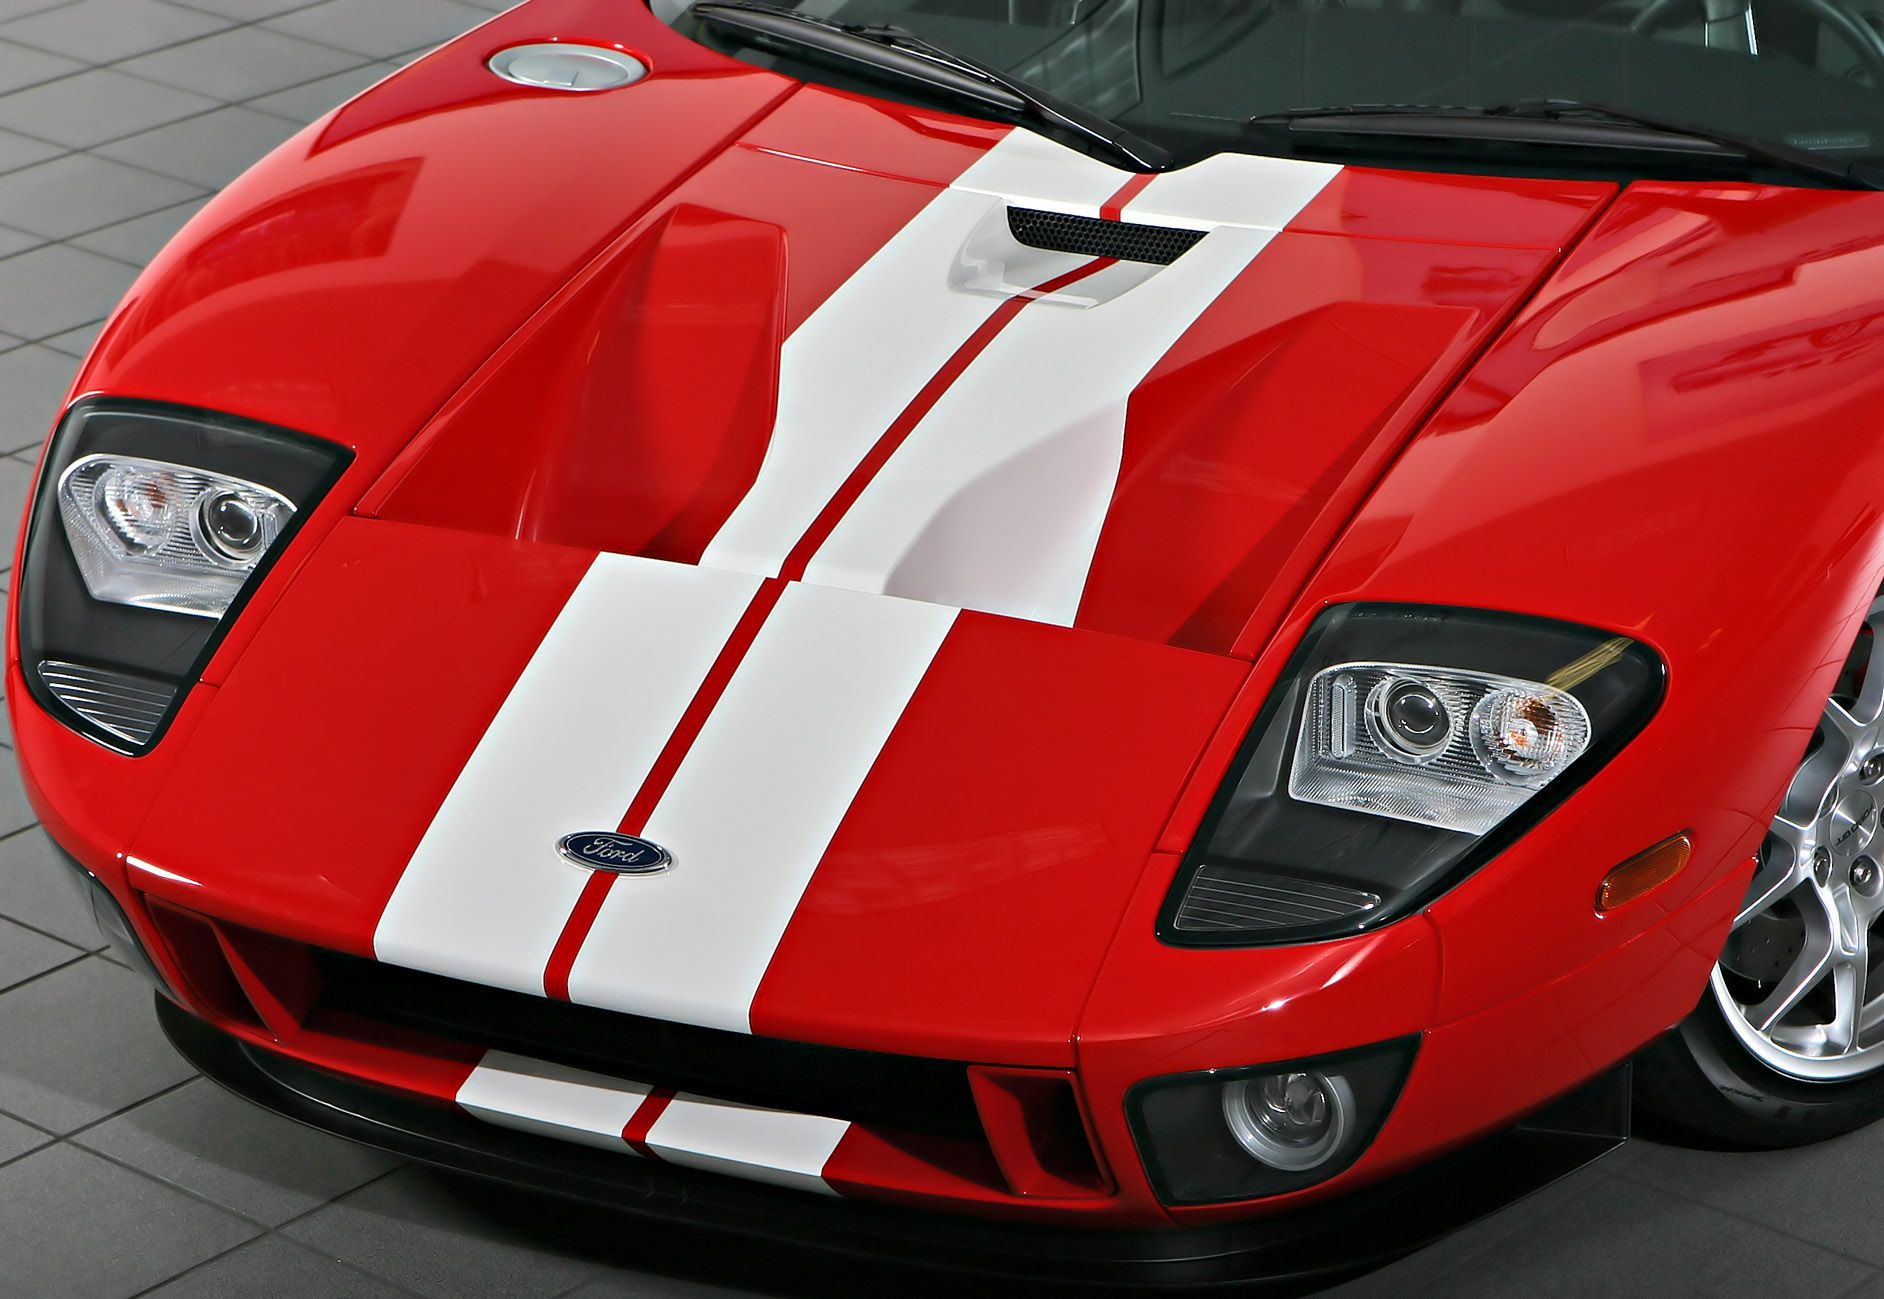 Ford Gt Hood Vents Capless Fuel Filler Upper Left The Car Has The Ship In A Bottle Gas Tank